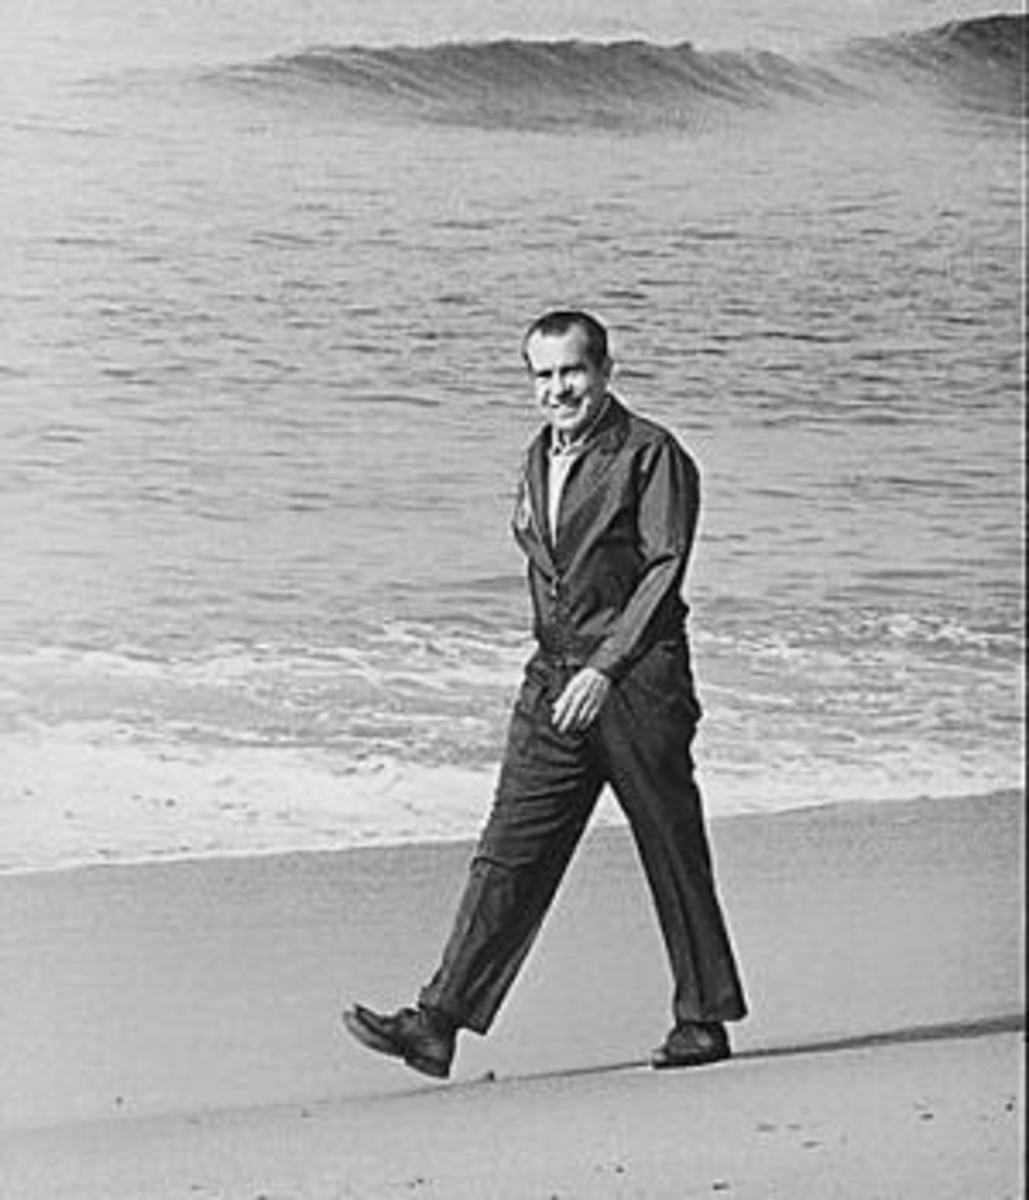 Nixon walking on the beach in San Clemente, 1971 (Credit: National Archives)